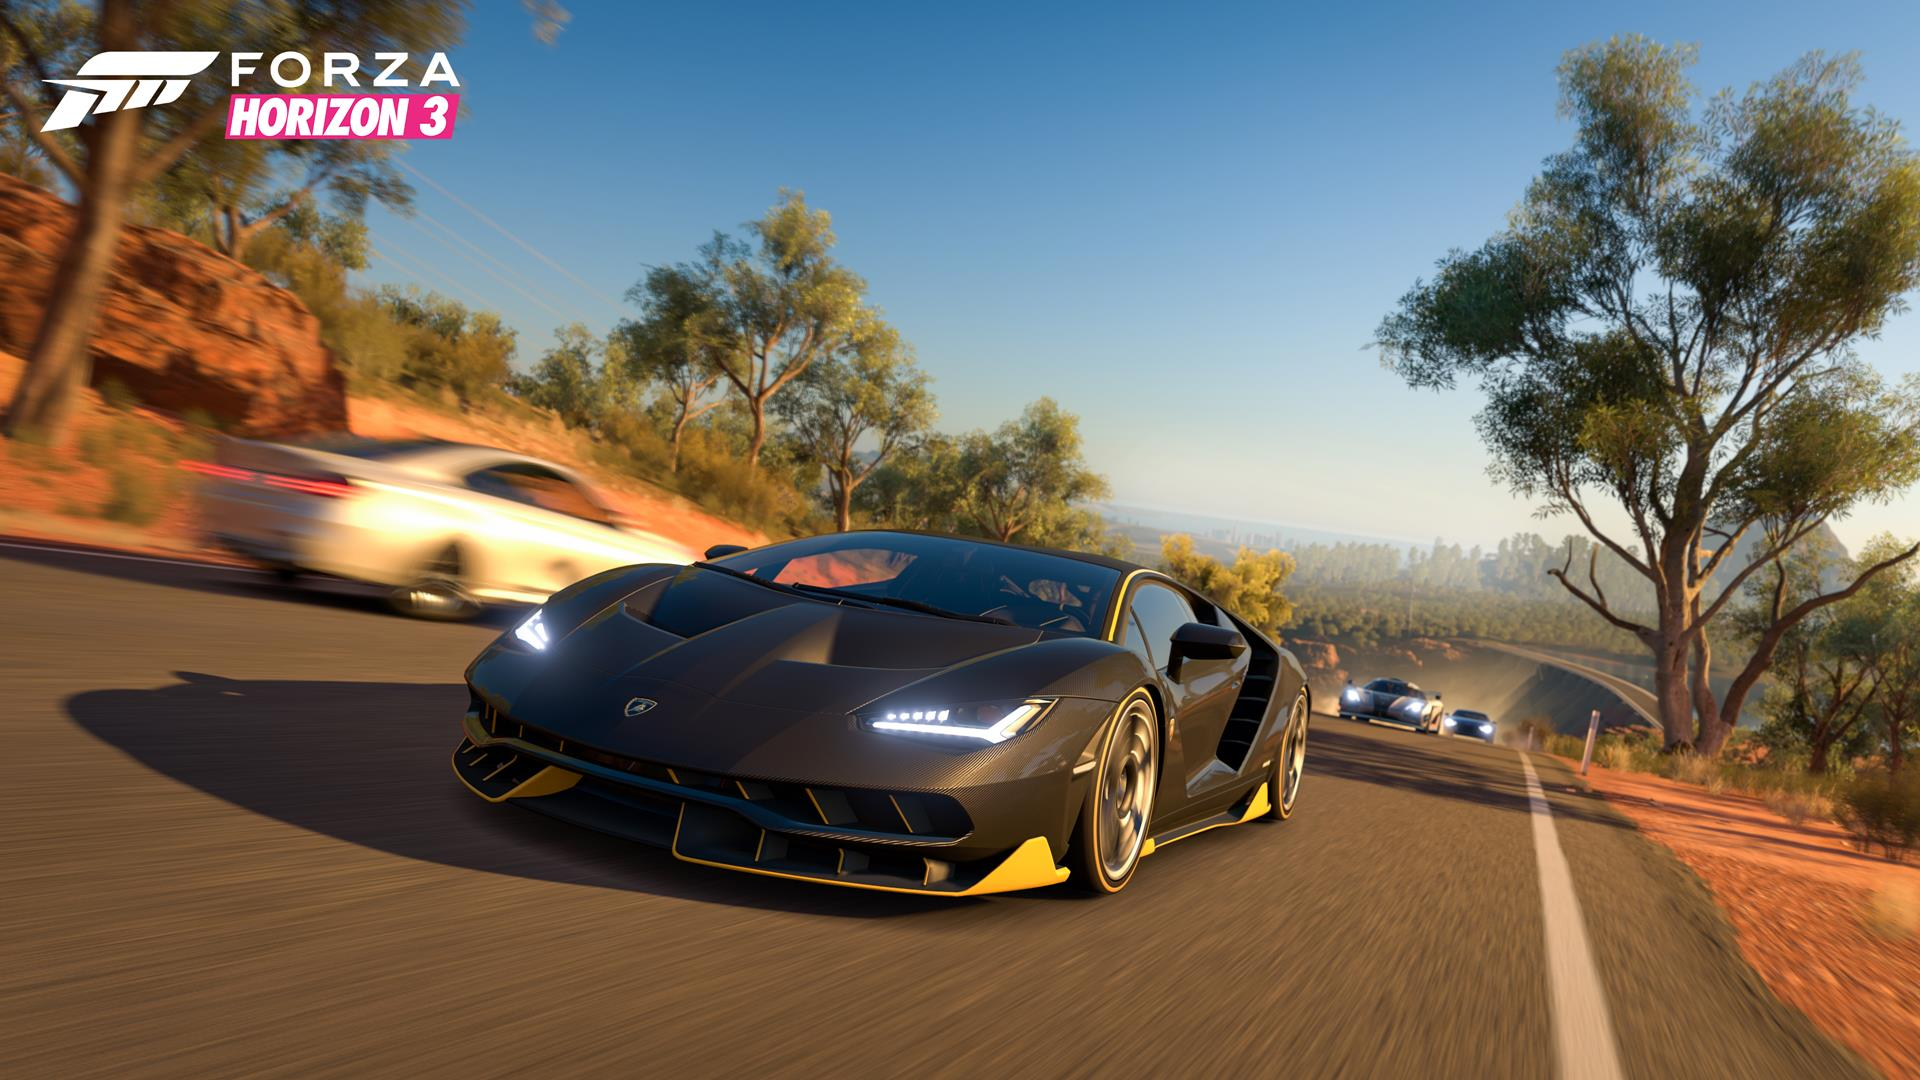 Forza Horizon 3 Preview - Speed, Agility and Beauty Coming